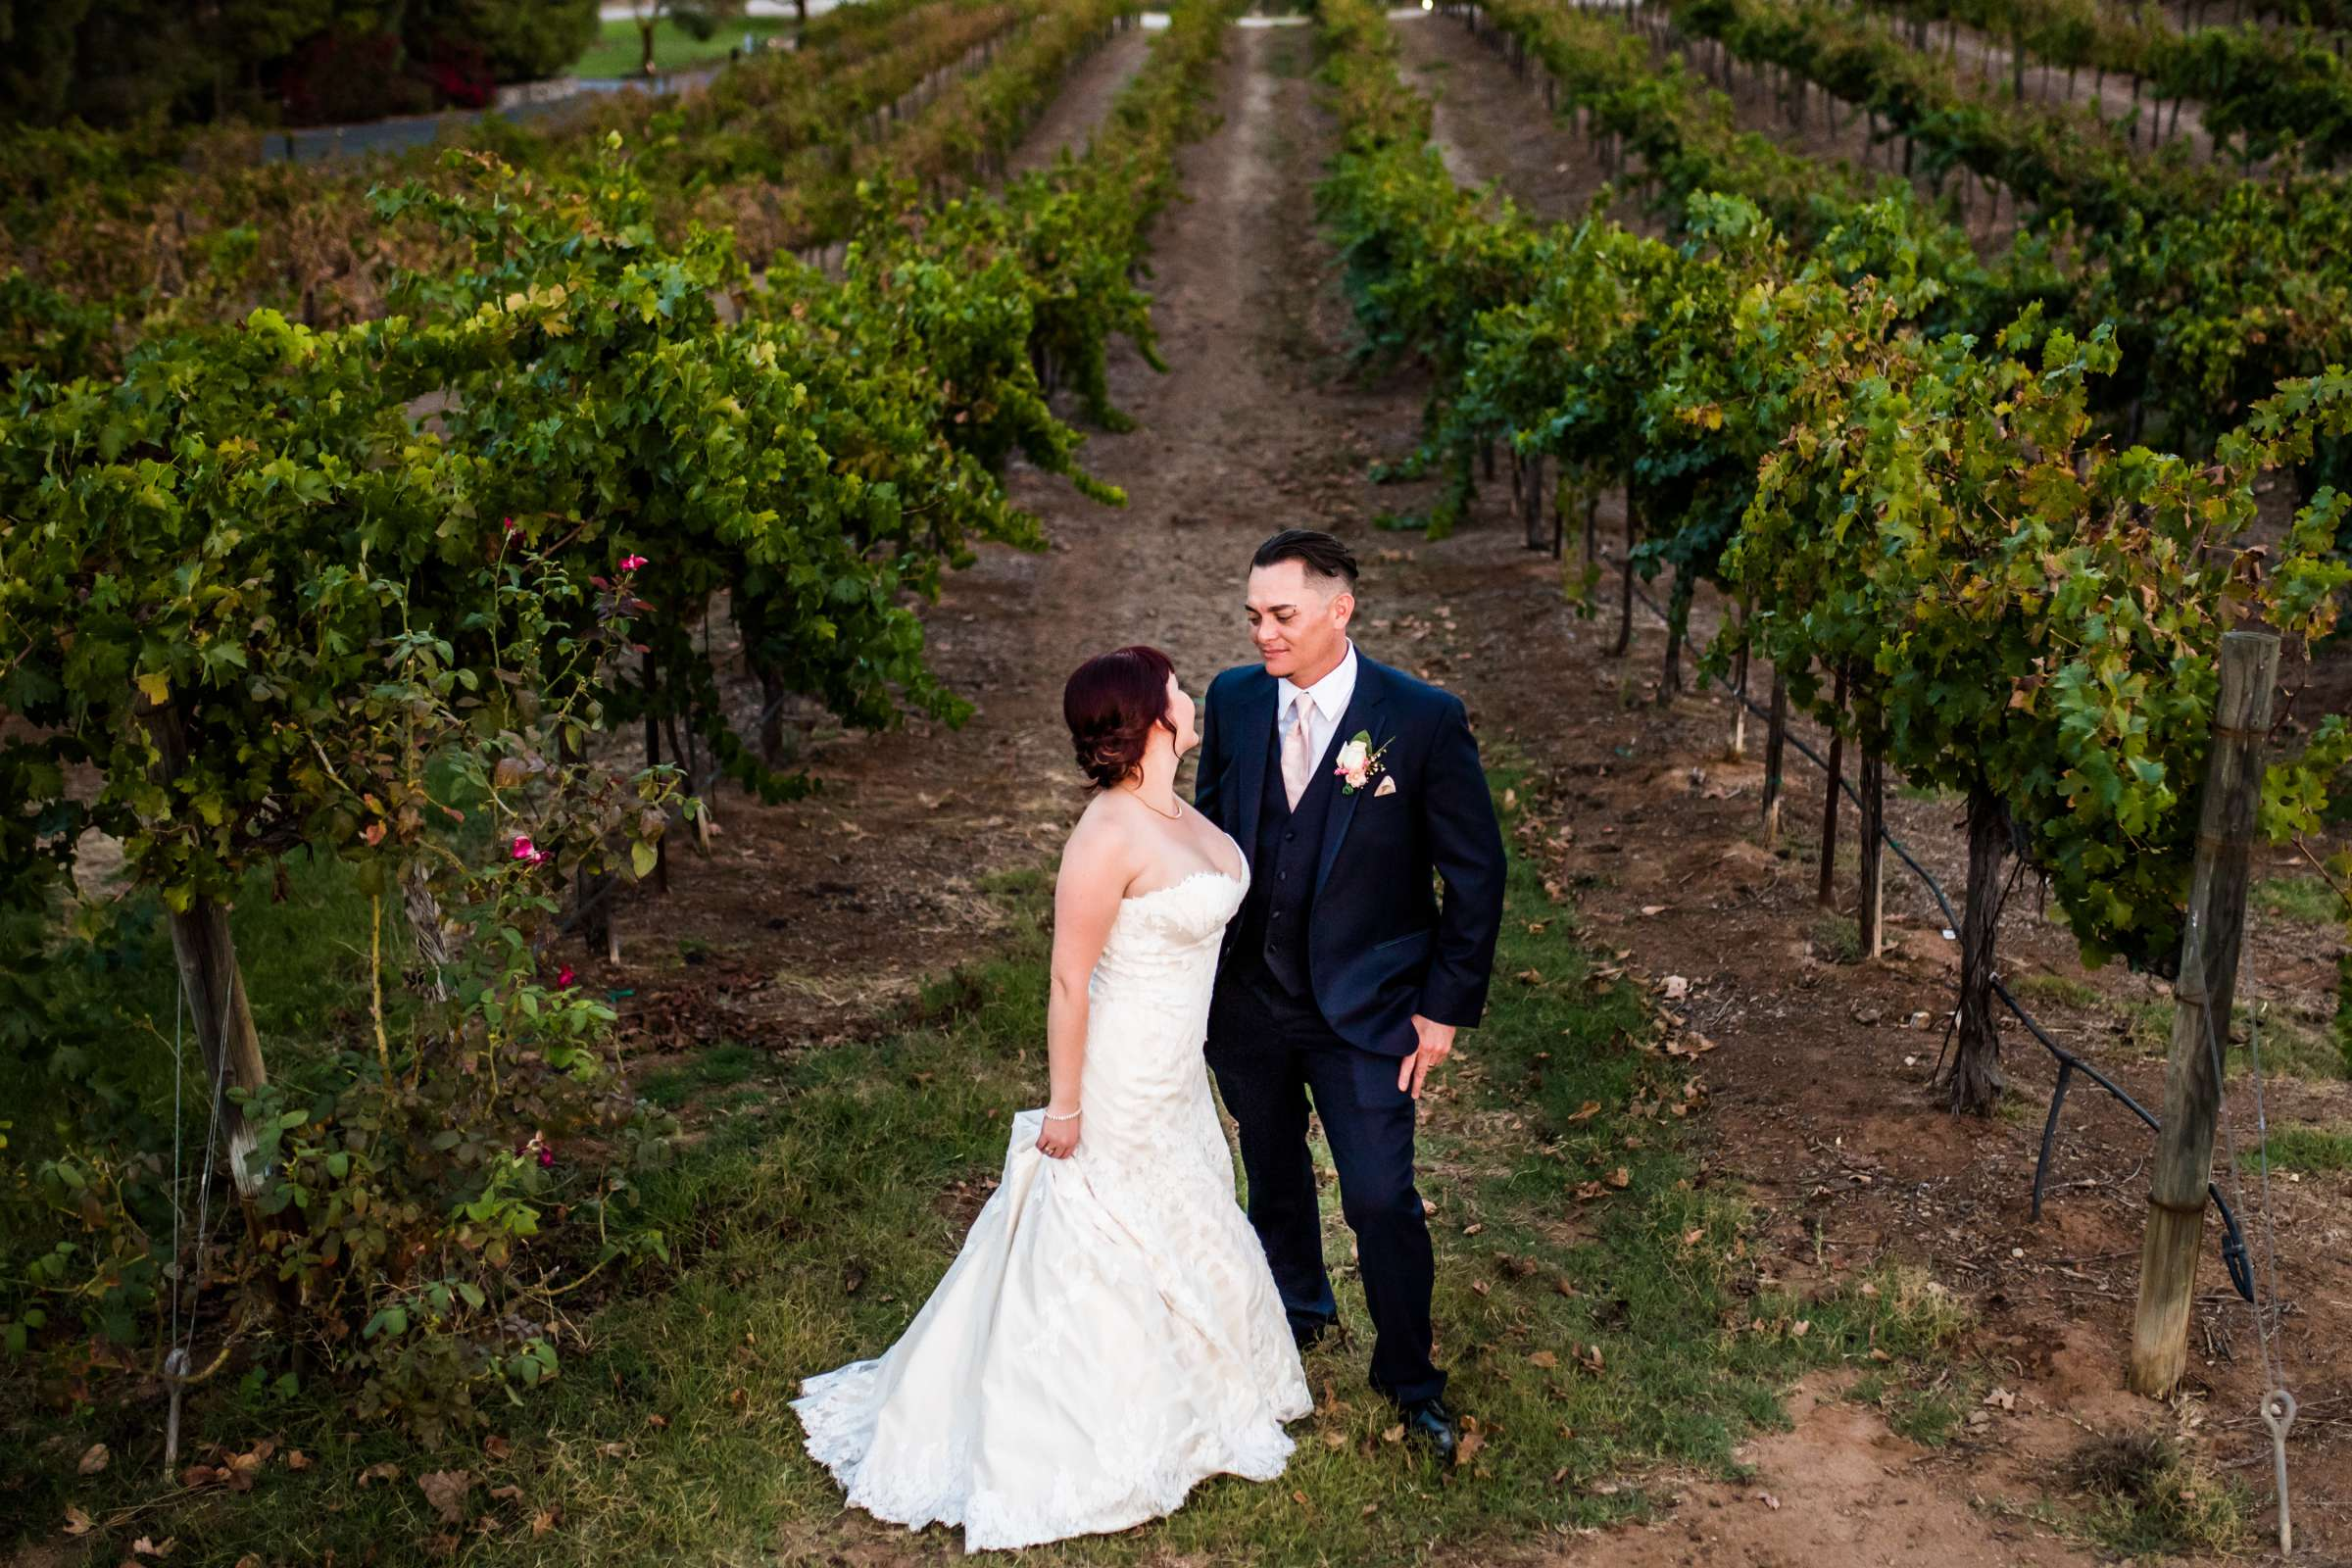 Orfila Vineyards Wedding, Tulasi and Richard Wedding Photo #3 by True Photography